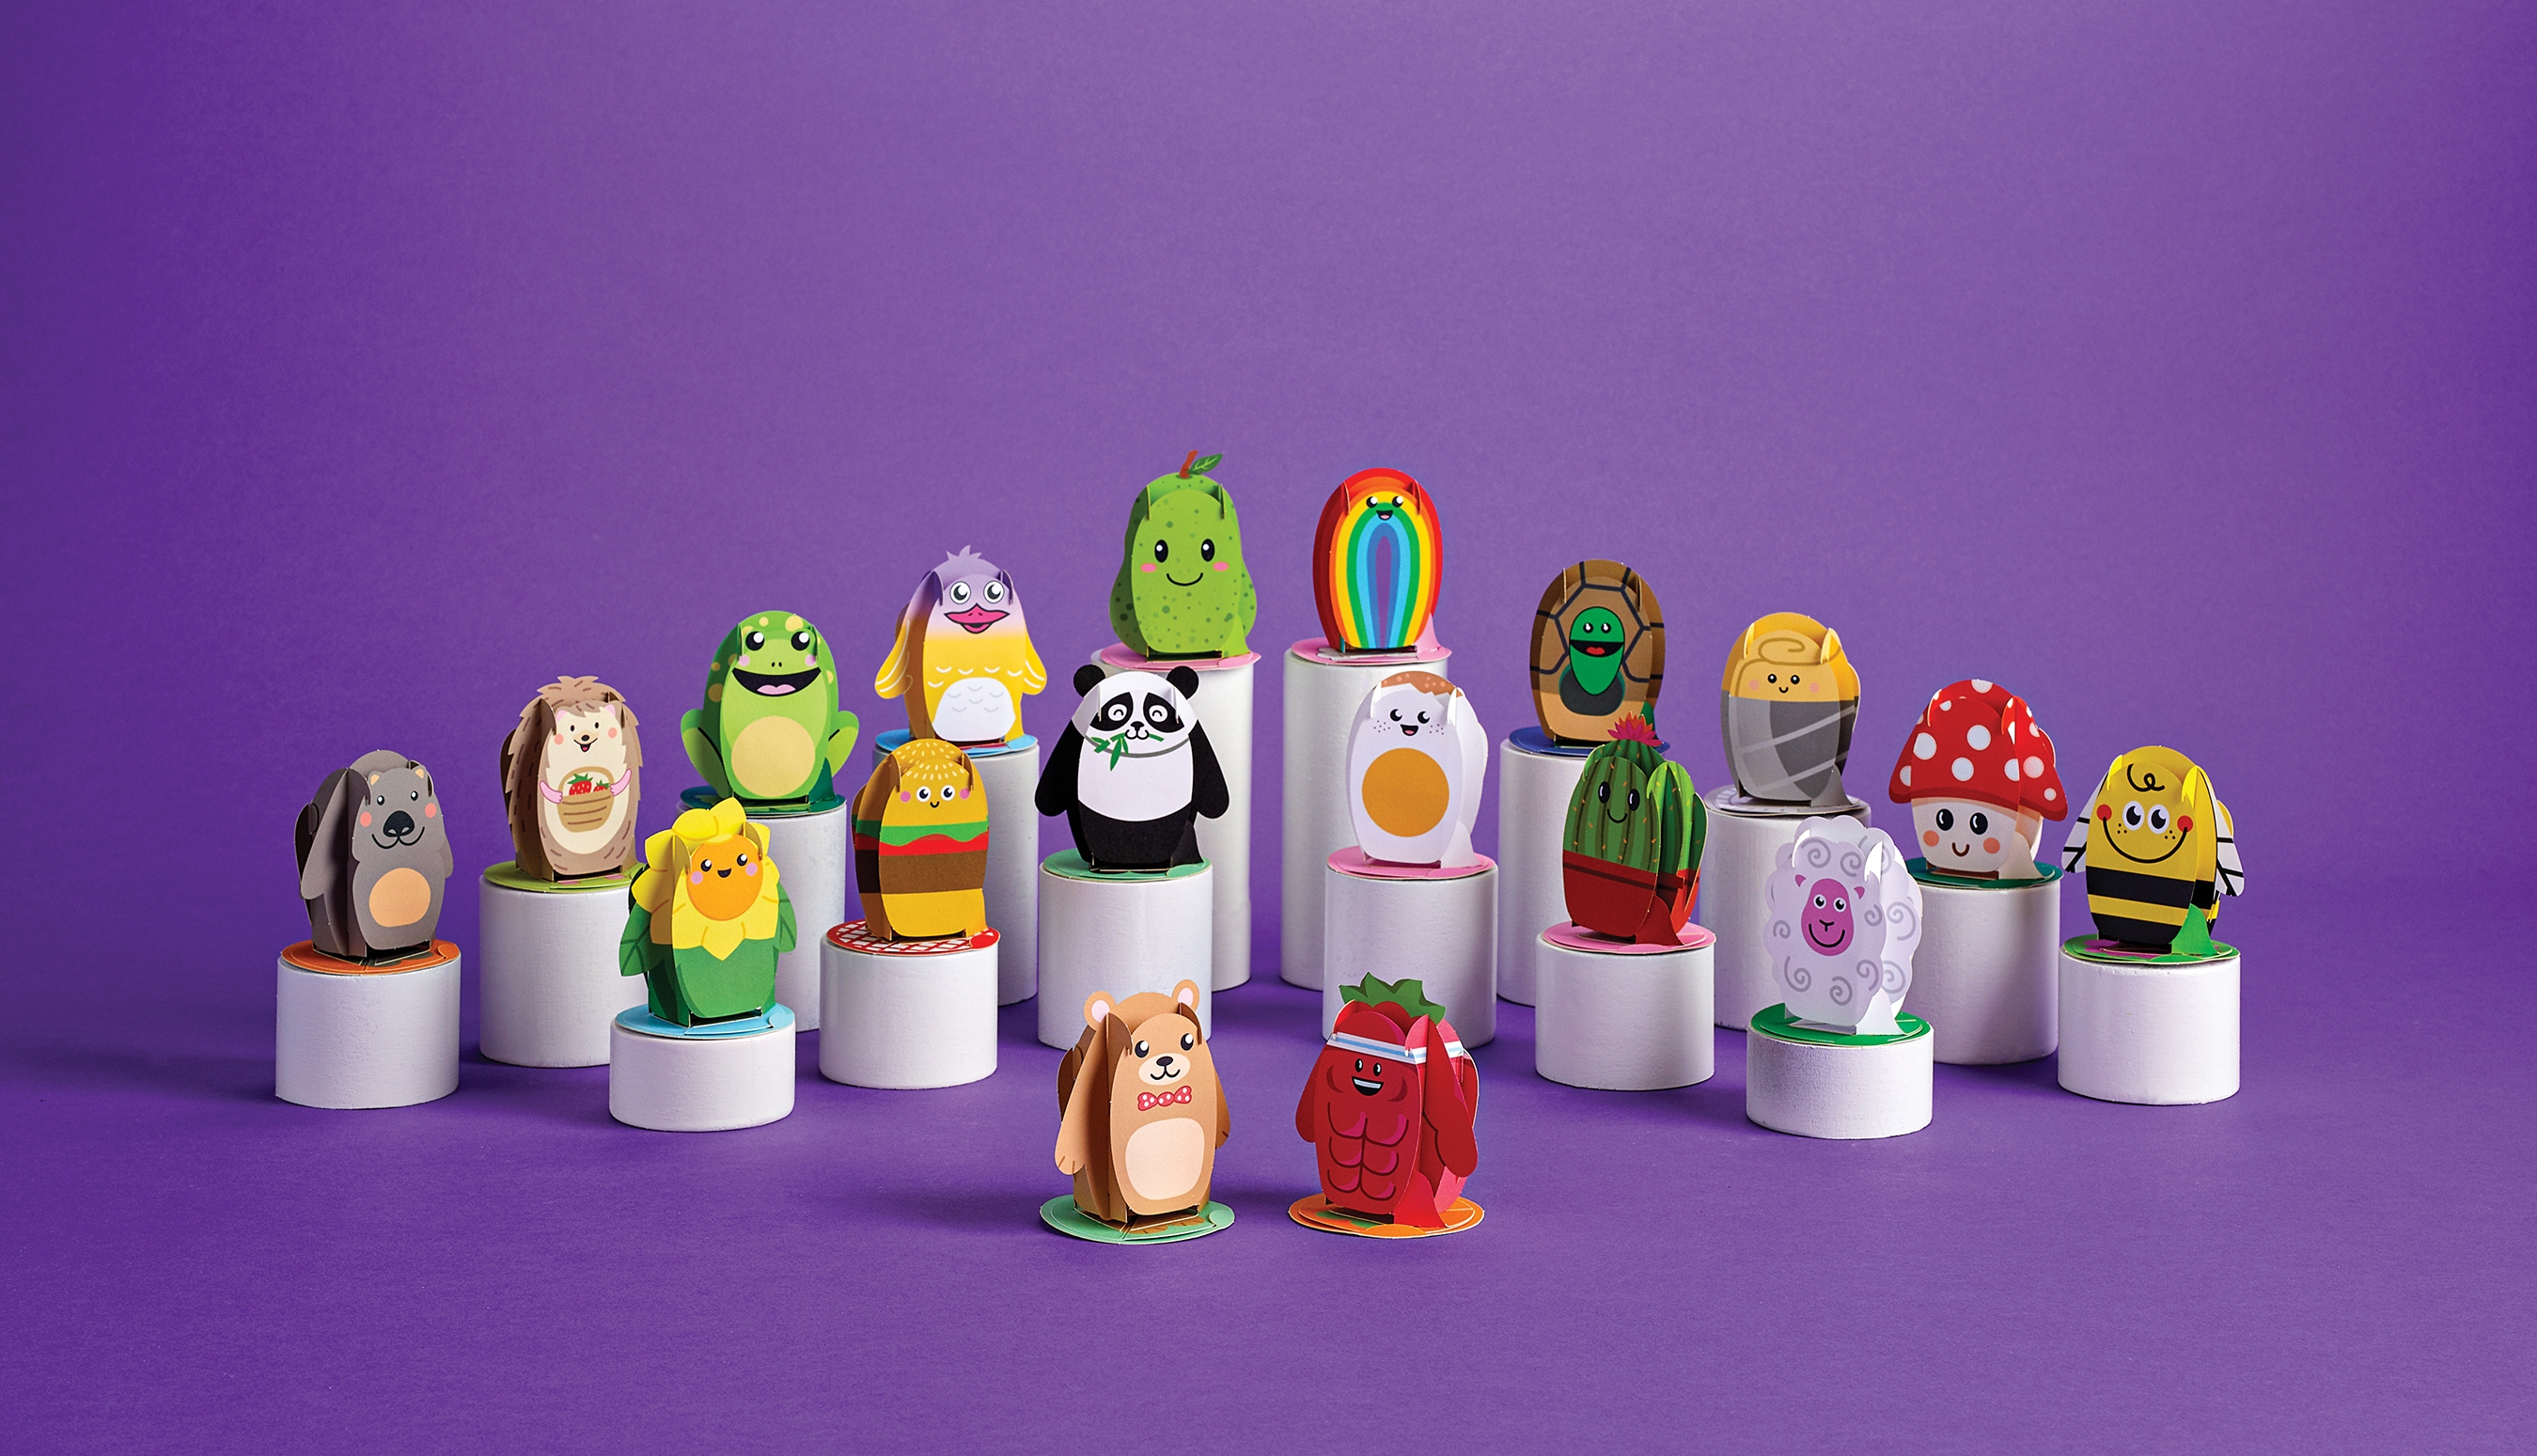 Meet the Playpop Explorers - 3D pop-up paper pals on a mission to create magical moments.